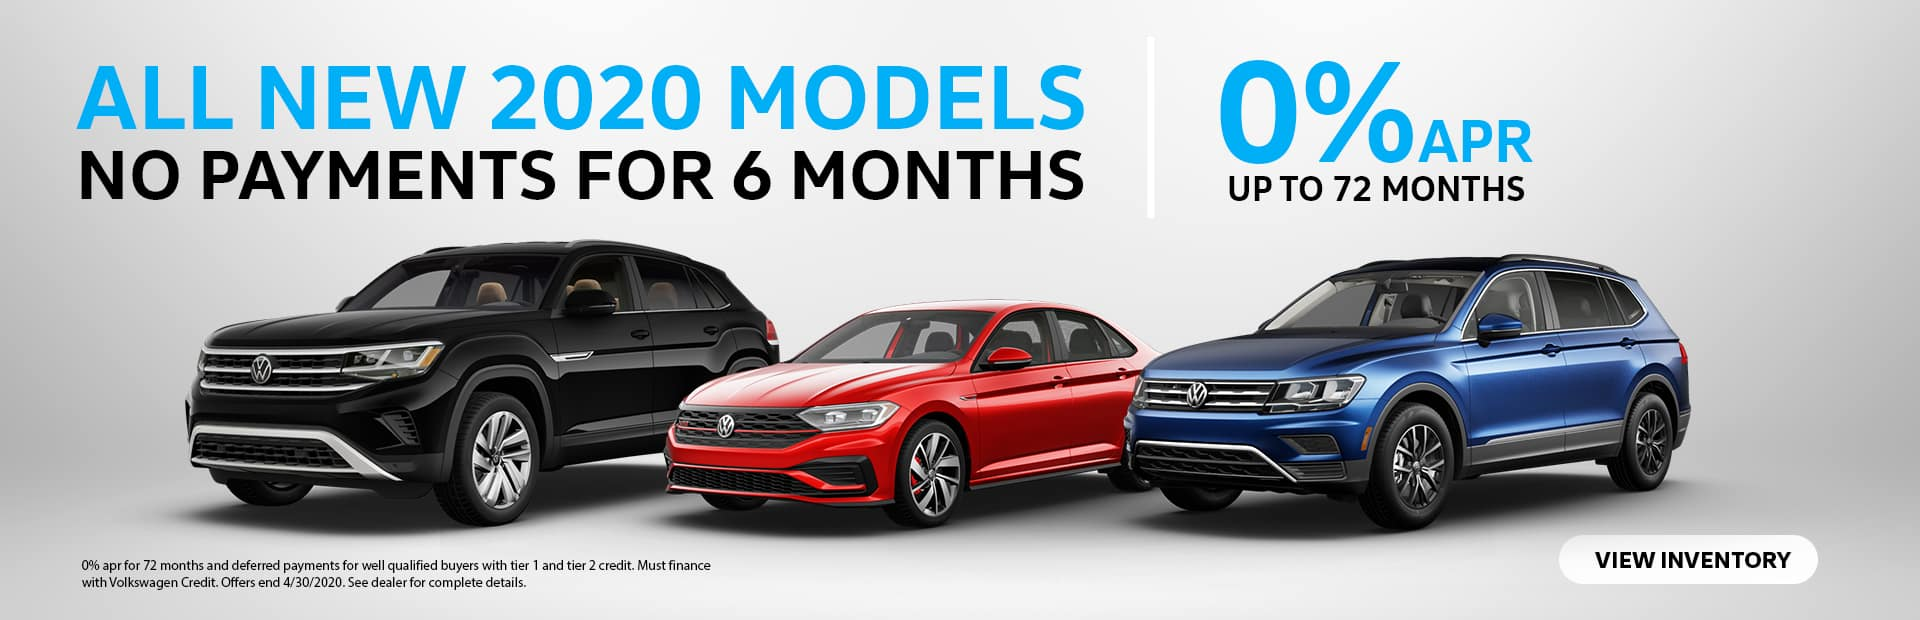 0% APR Tier 1 and 2 up to 72 Months. Volkswagen